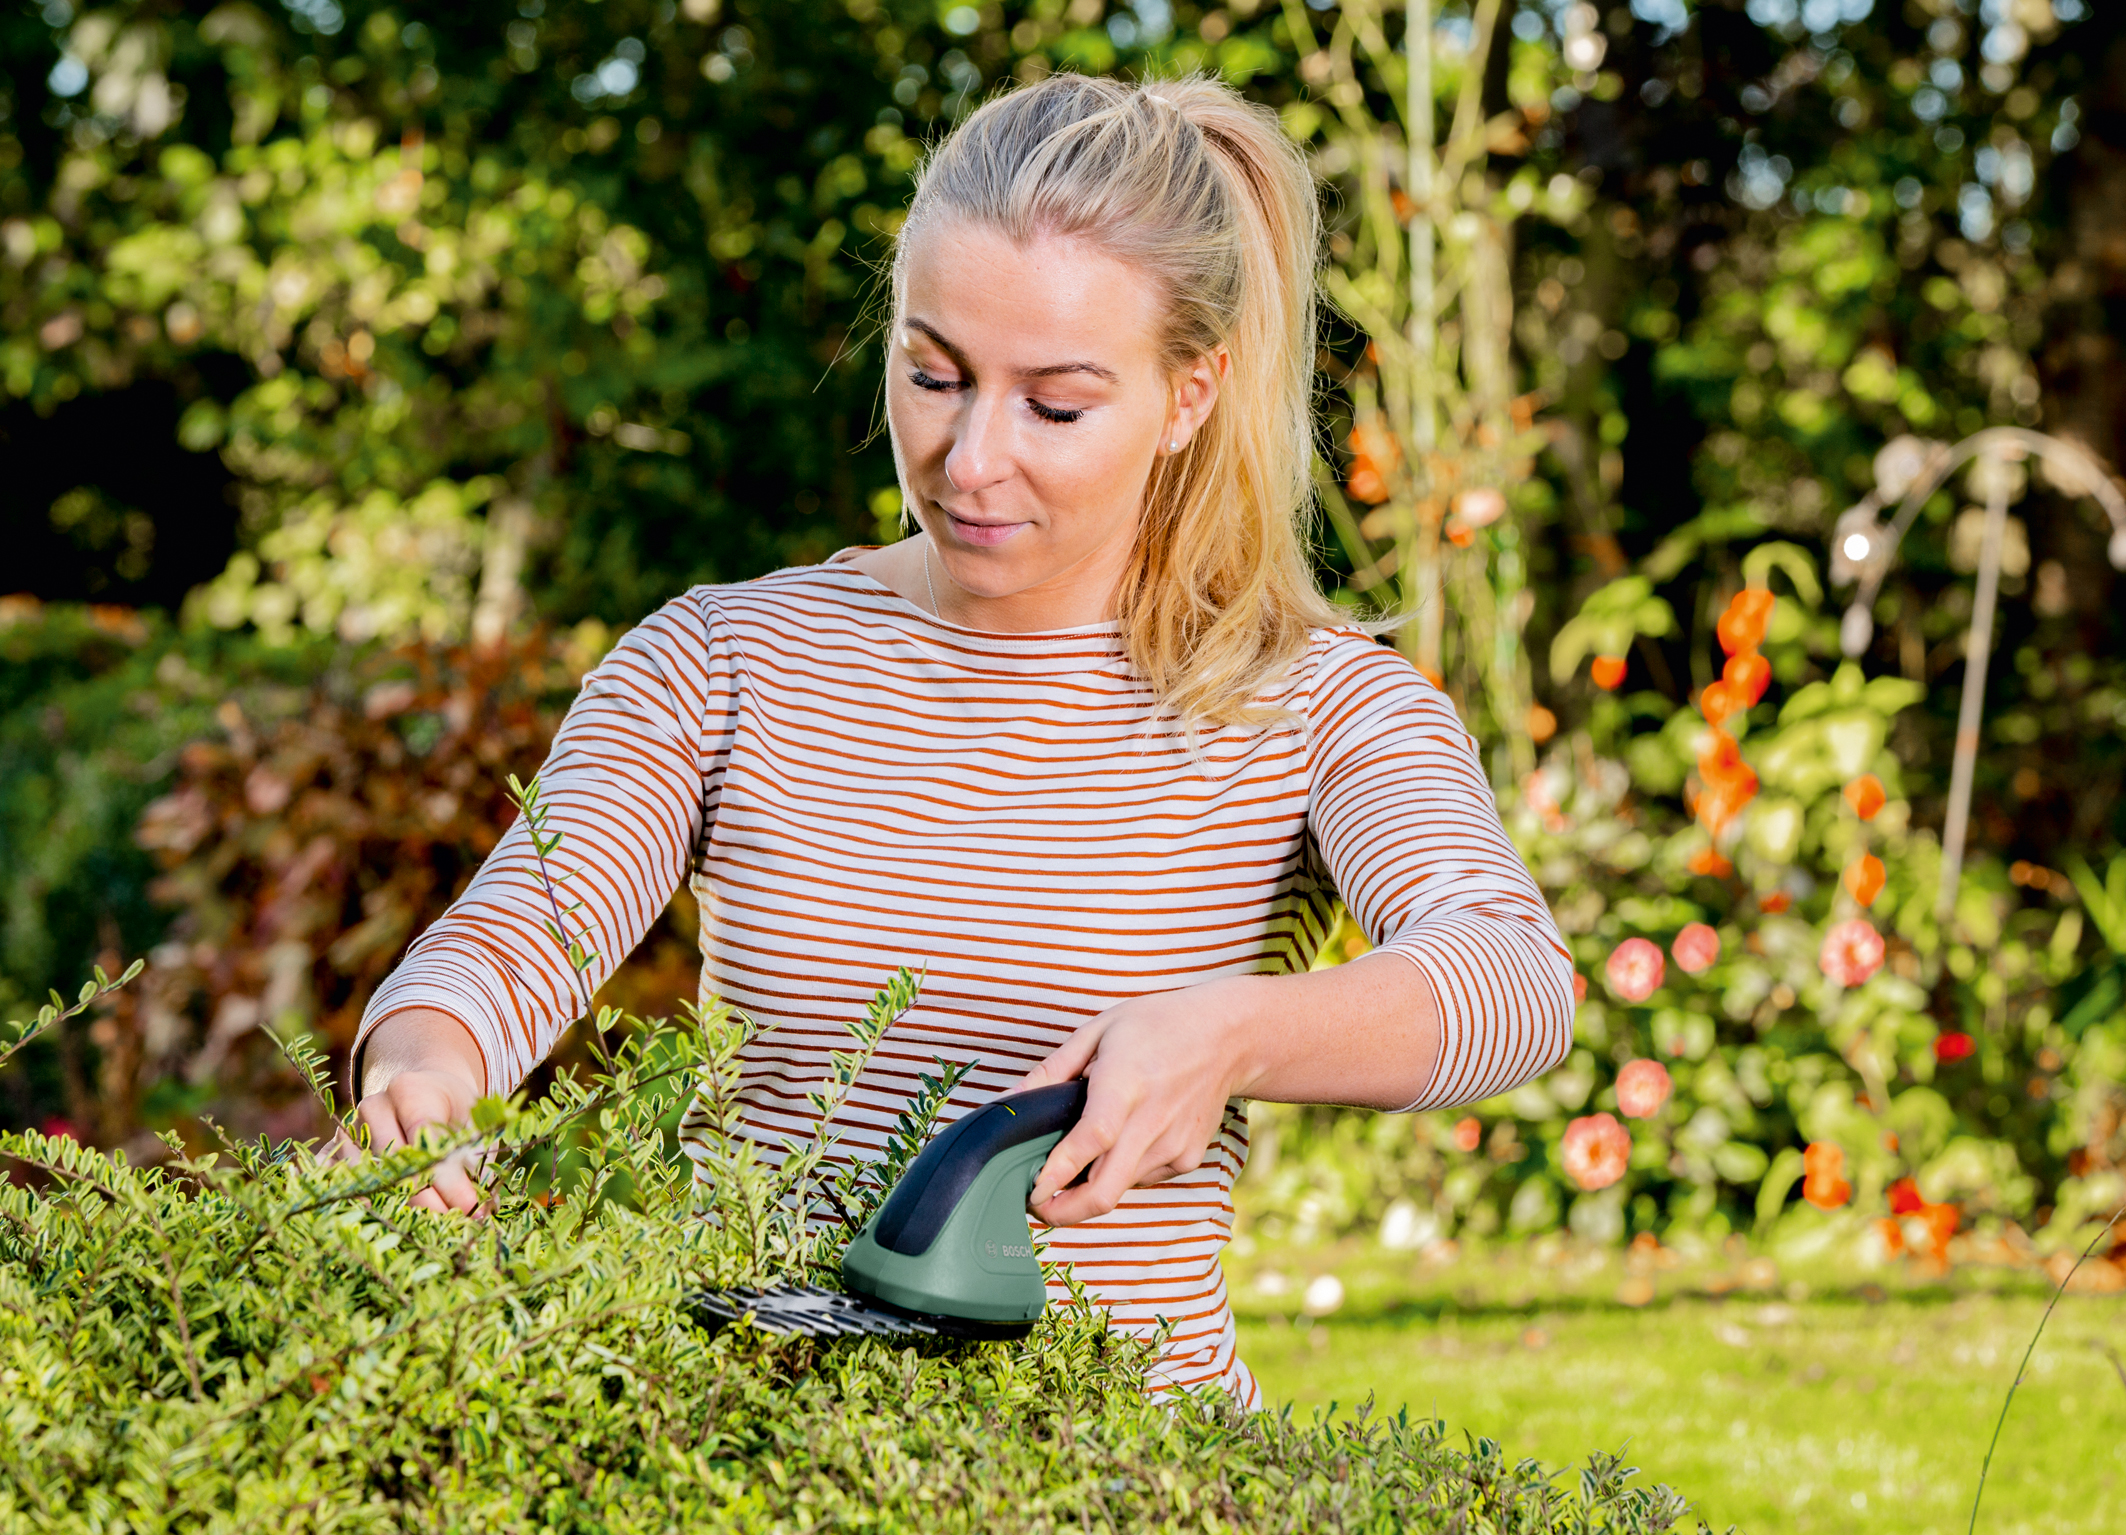 The 2-in-1 corldess helper in the garden: The new EasyShear from Bosch